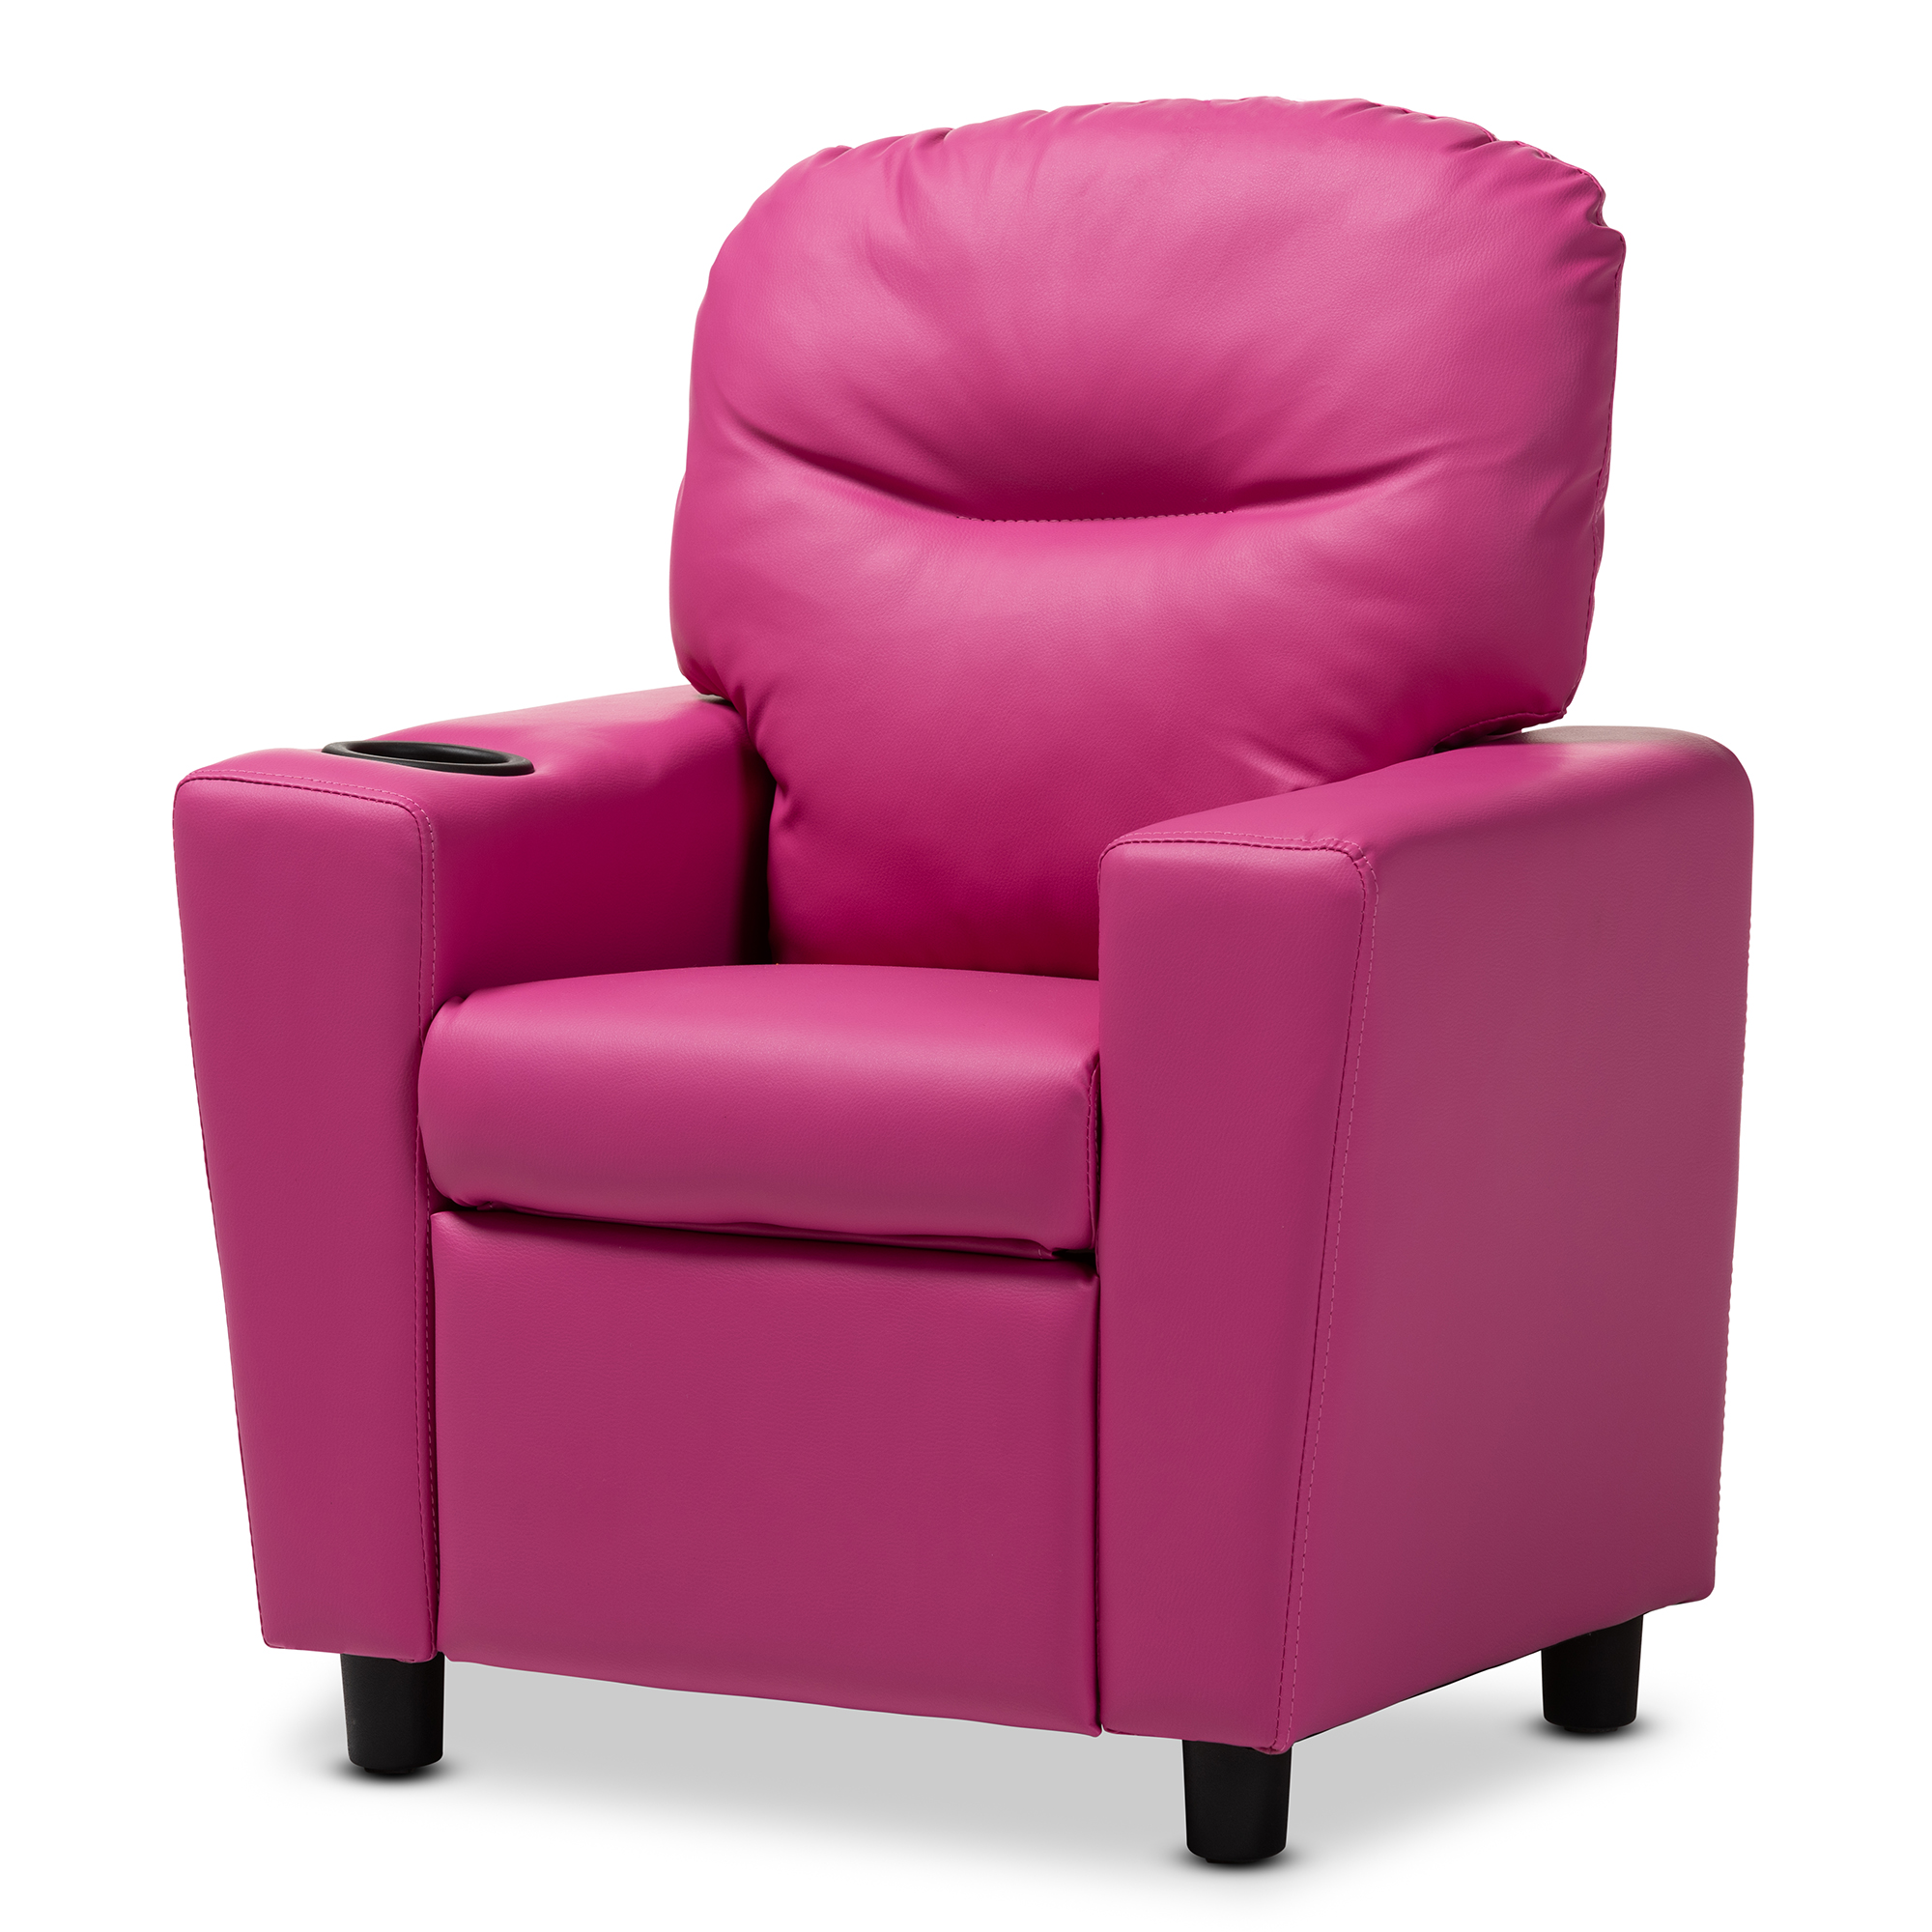 Baxton Studio Evonka Modern And Contemporary Magenta Pink Faux